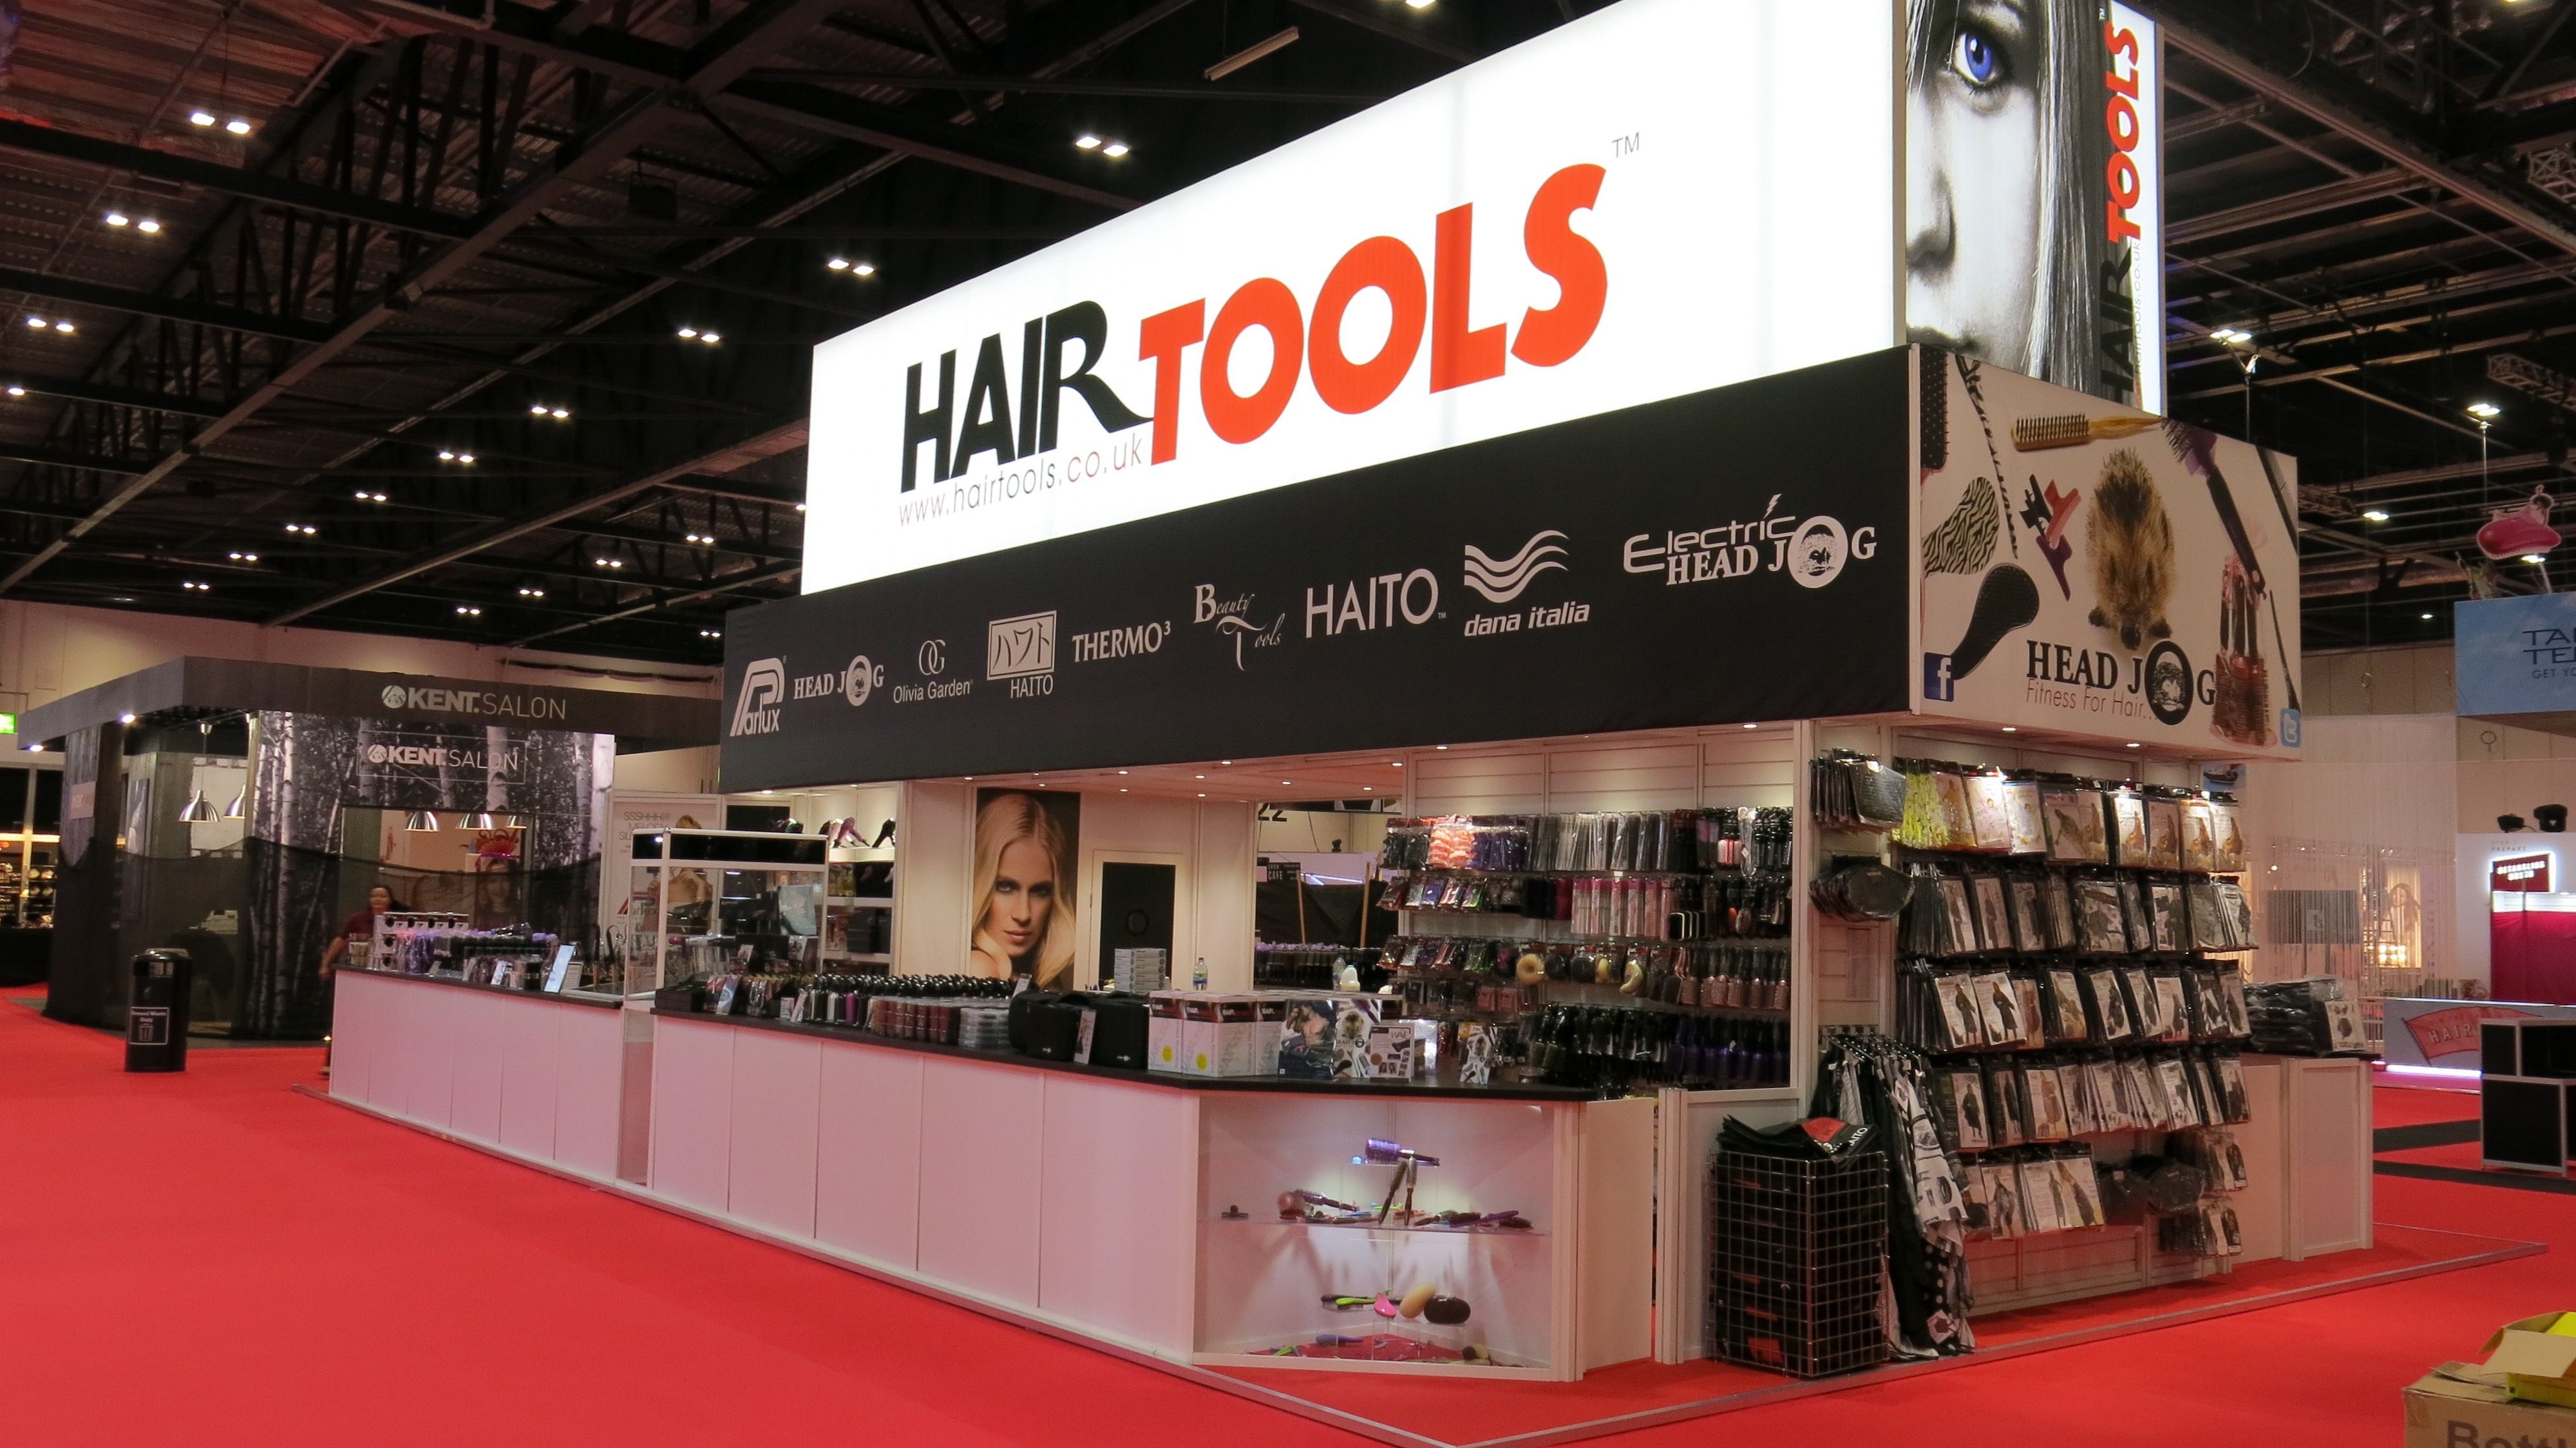 Exhibition Stand Builders Kent : Completed stand build for hair tools ltd by silverwood exhibitions